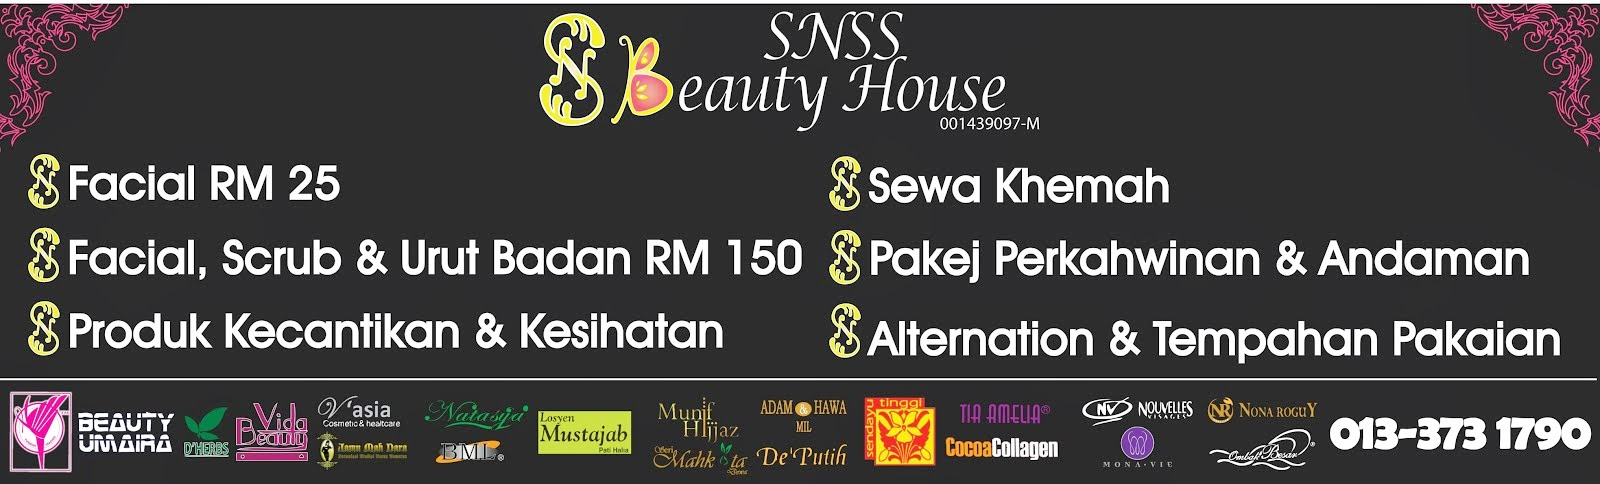 SNSS Beauty House